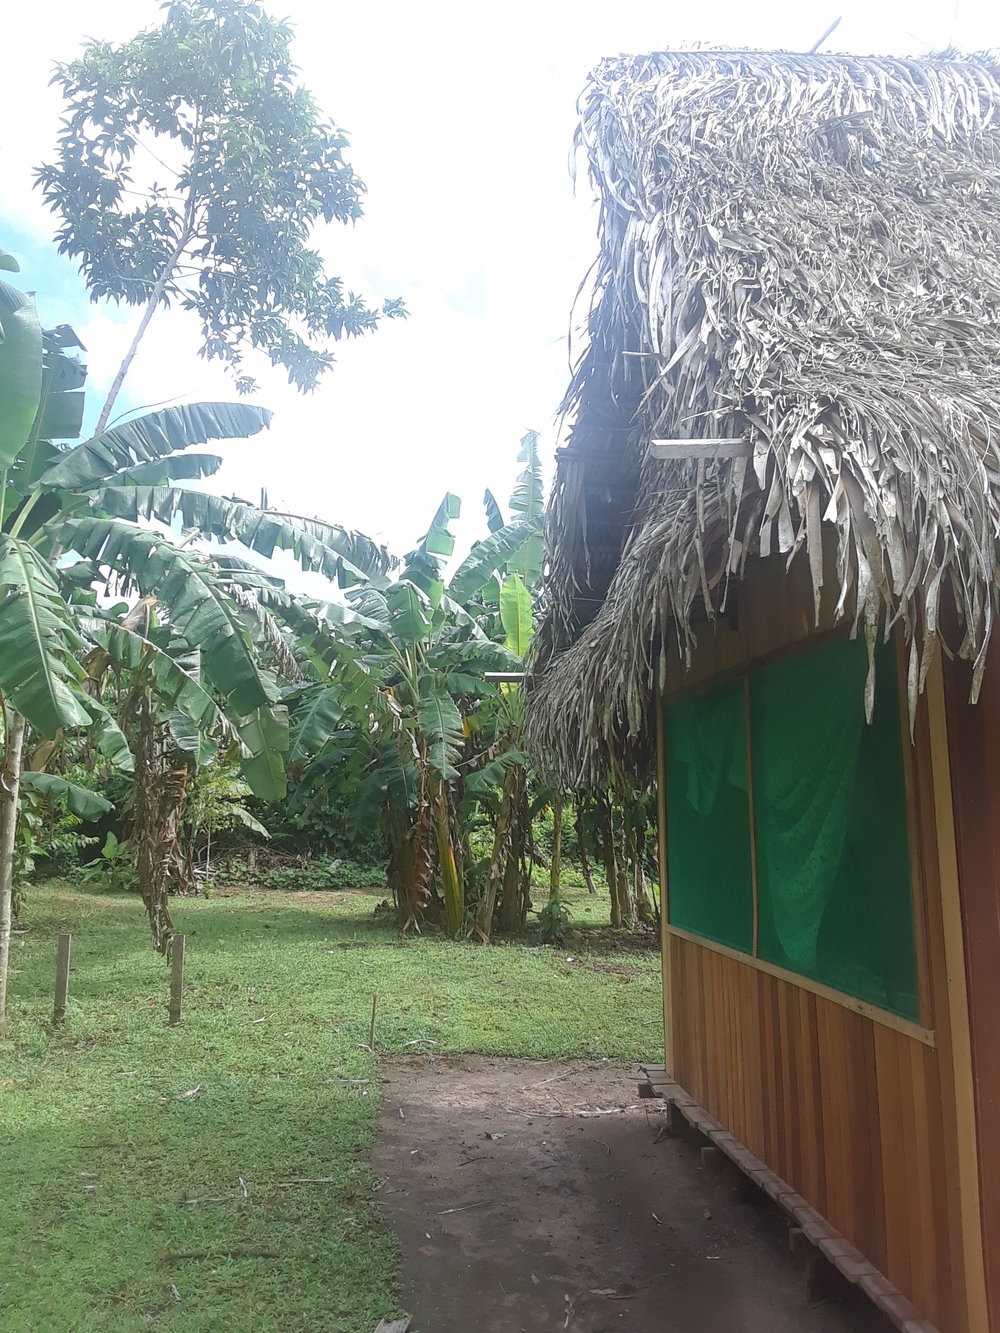 My Bungalow in the Amazon Jungle